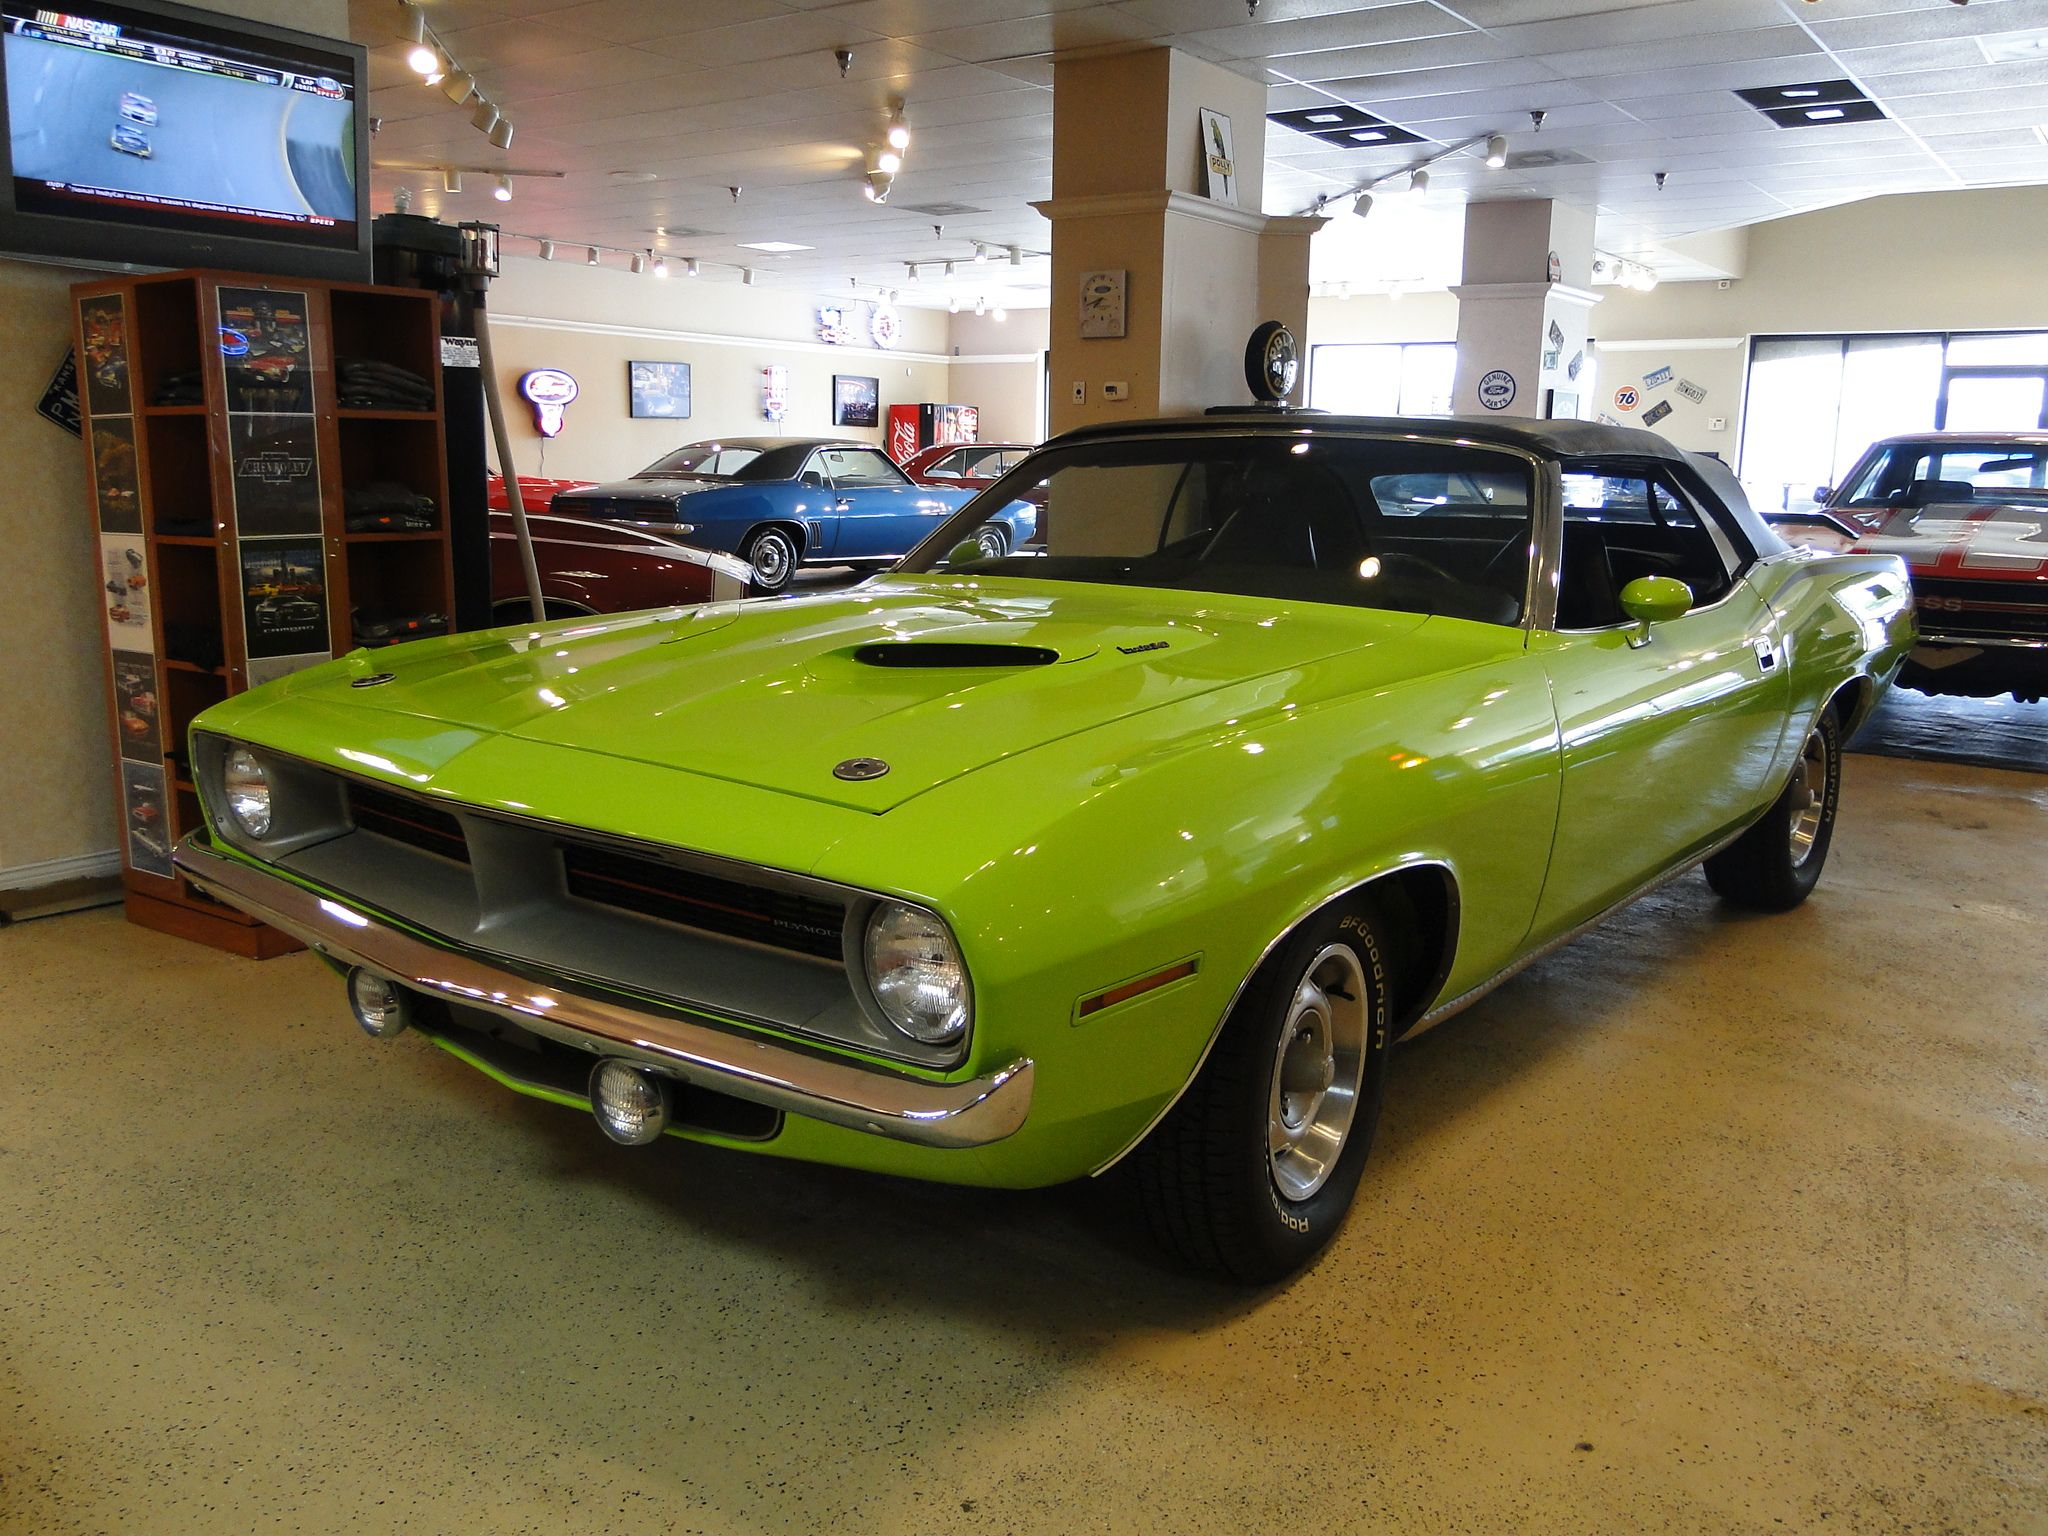 New 1970 plymouth cuda numbers matching 340 convertible for sale